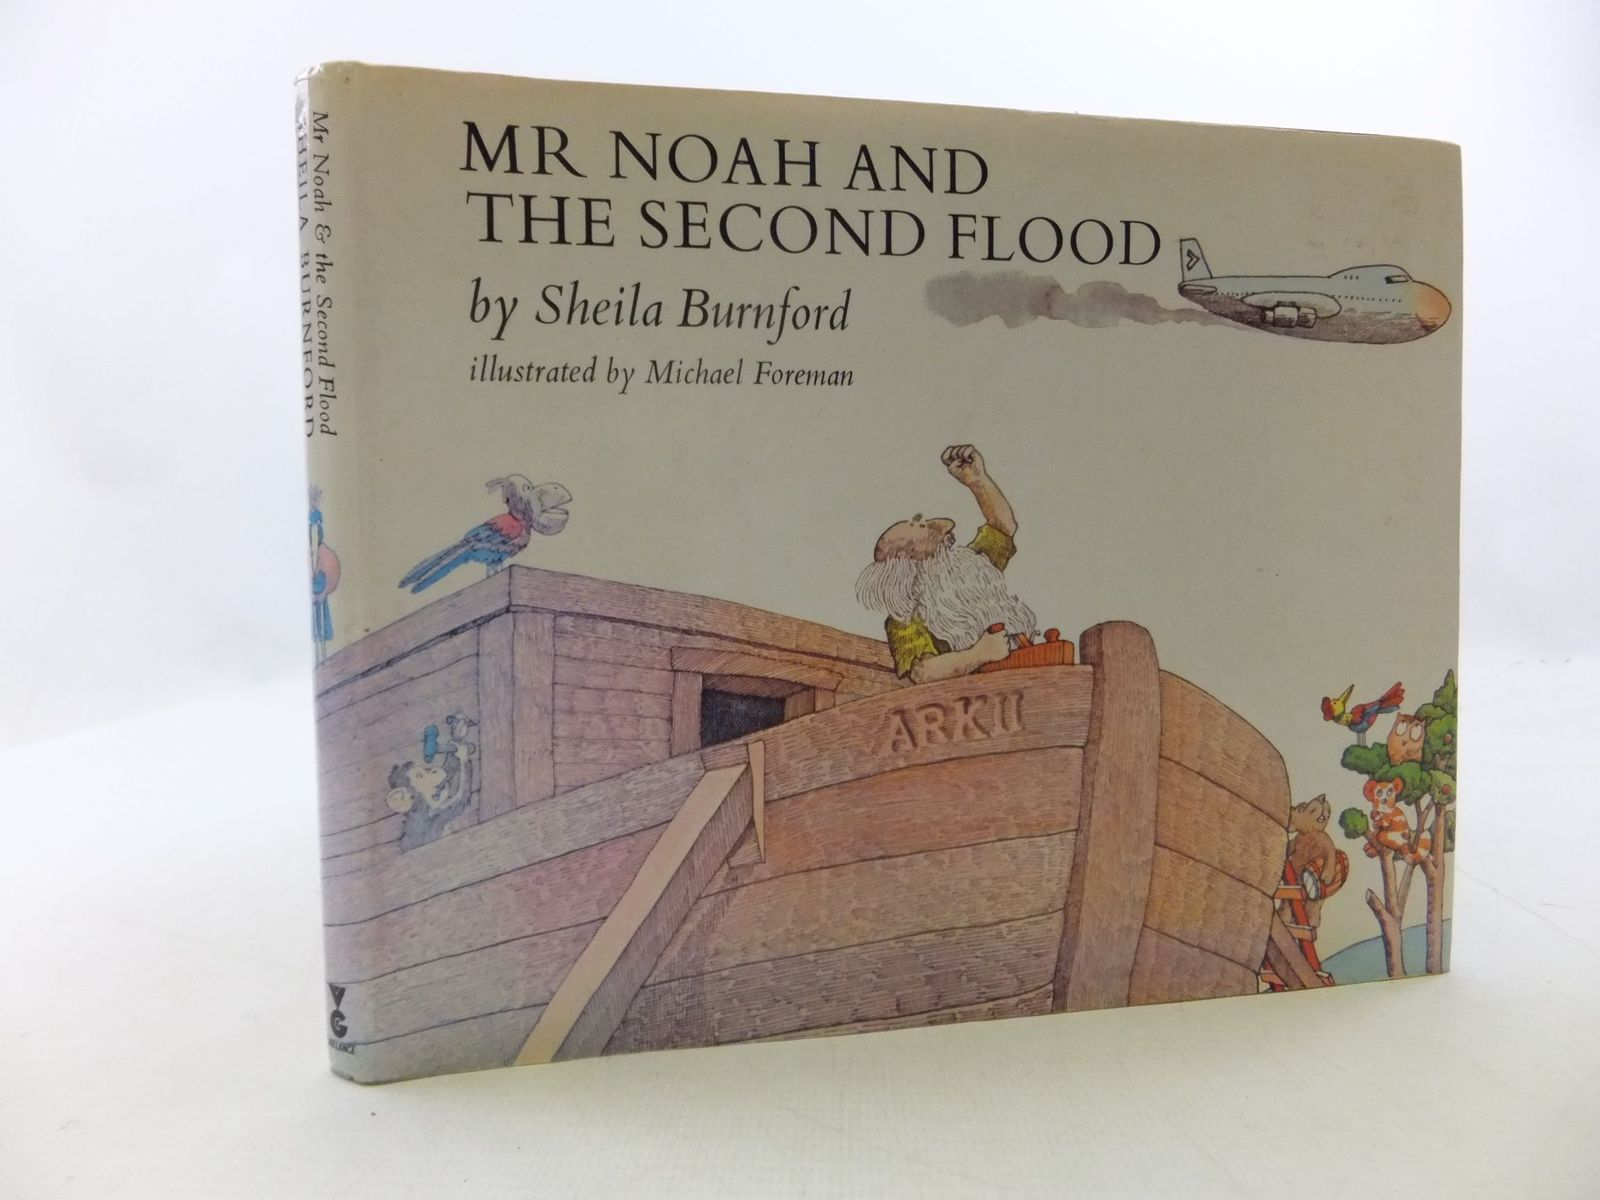 Photo of MR NOAH AND THE SECOND FLOOD written by Burnford, Sheila illustrated by Foreman, Michael published by Victor Gollancz Ltd. (STOCK CODE: 2112655)  for sale by Stella & Rose's Books